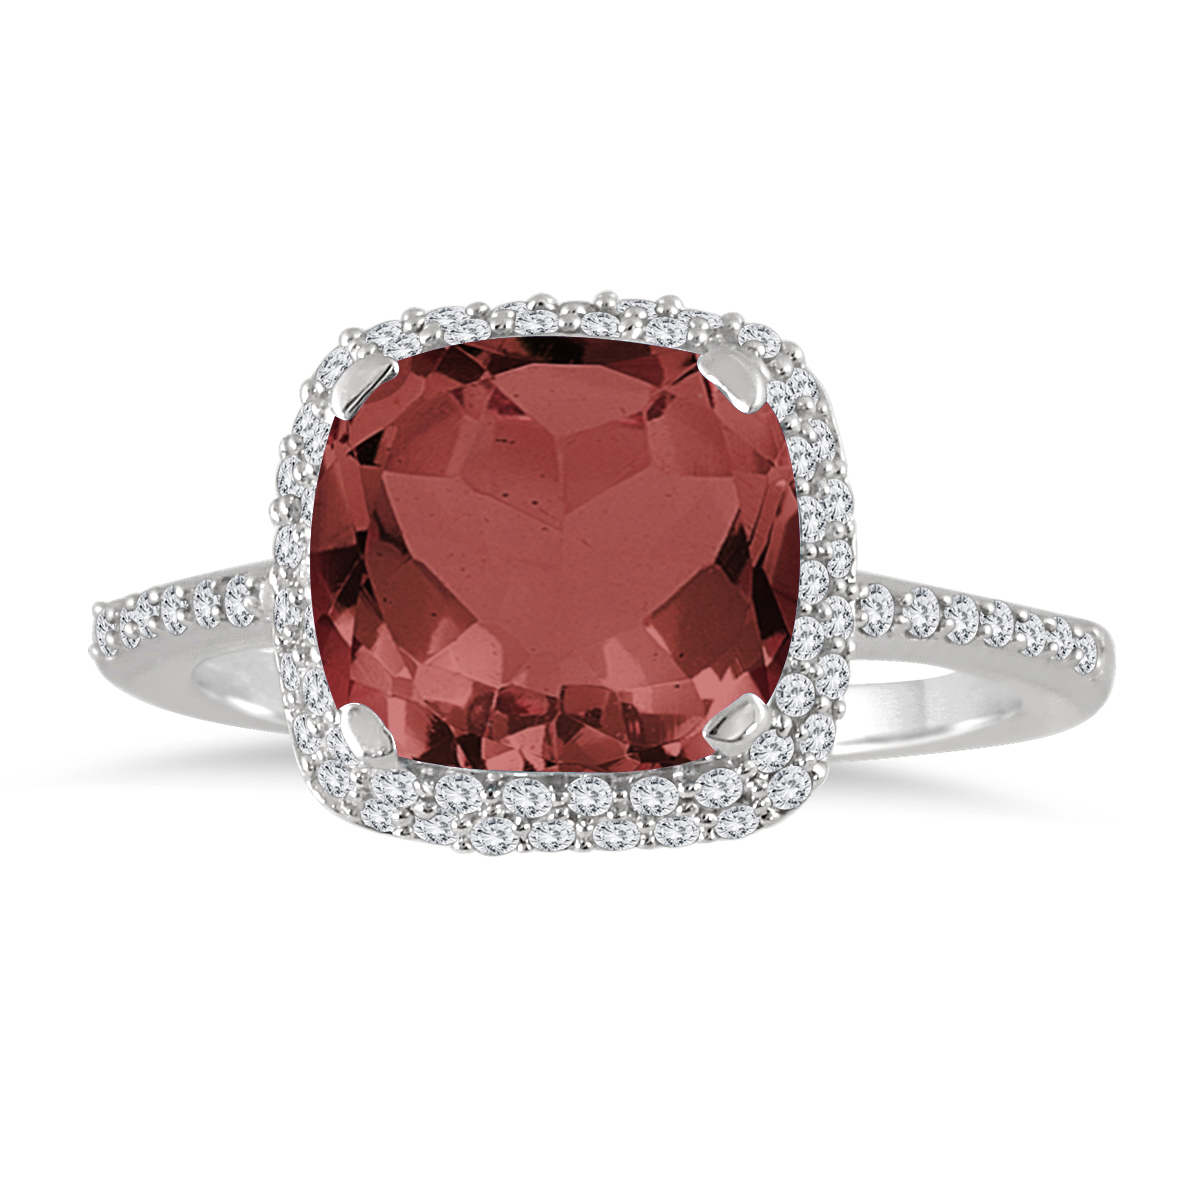 3 1/2 Carat Cushion Cut Garnet and